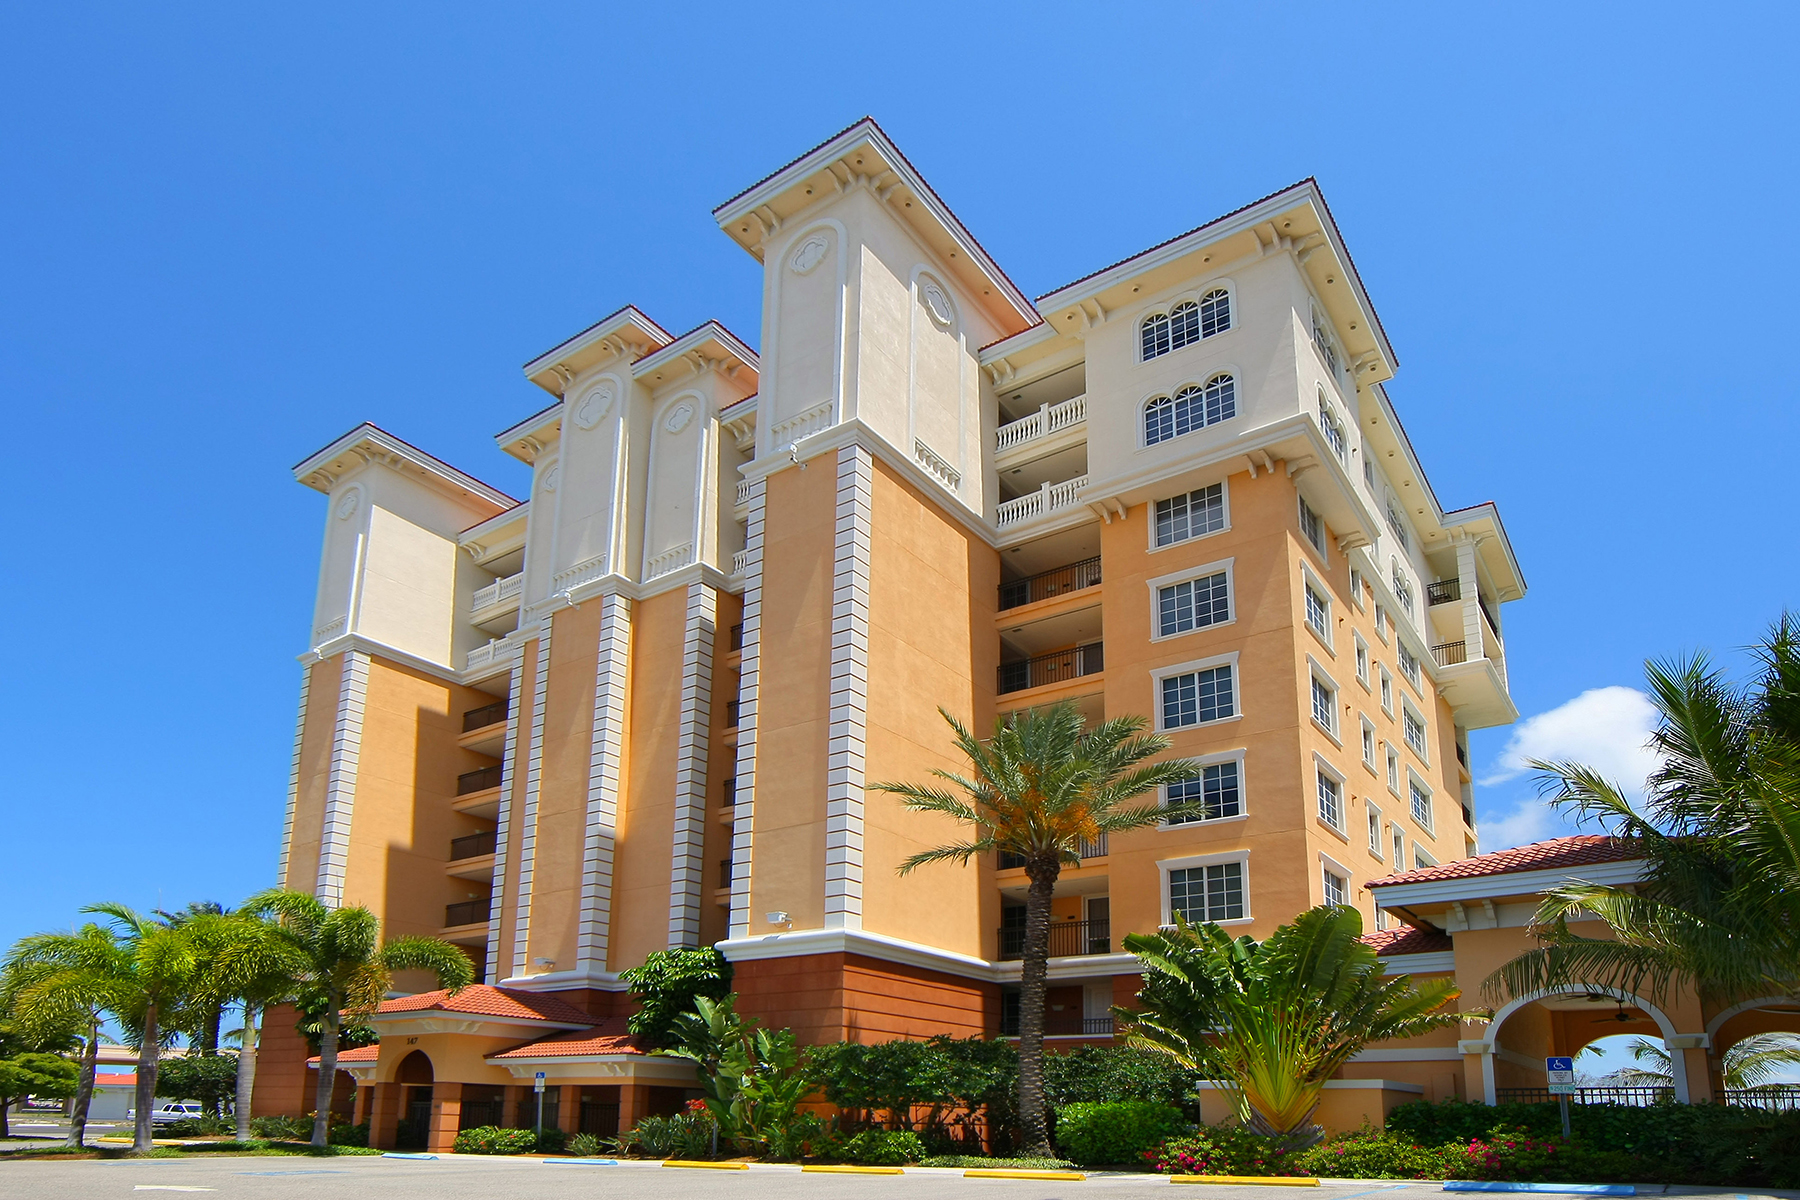 Condominium for Sale at WATERFRONT ON VENICE ISLAND 147 Tampa Ave E 802 Venice, Florida, 34285 United States